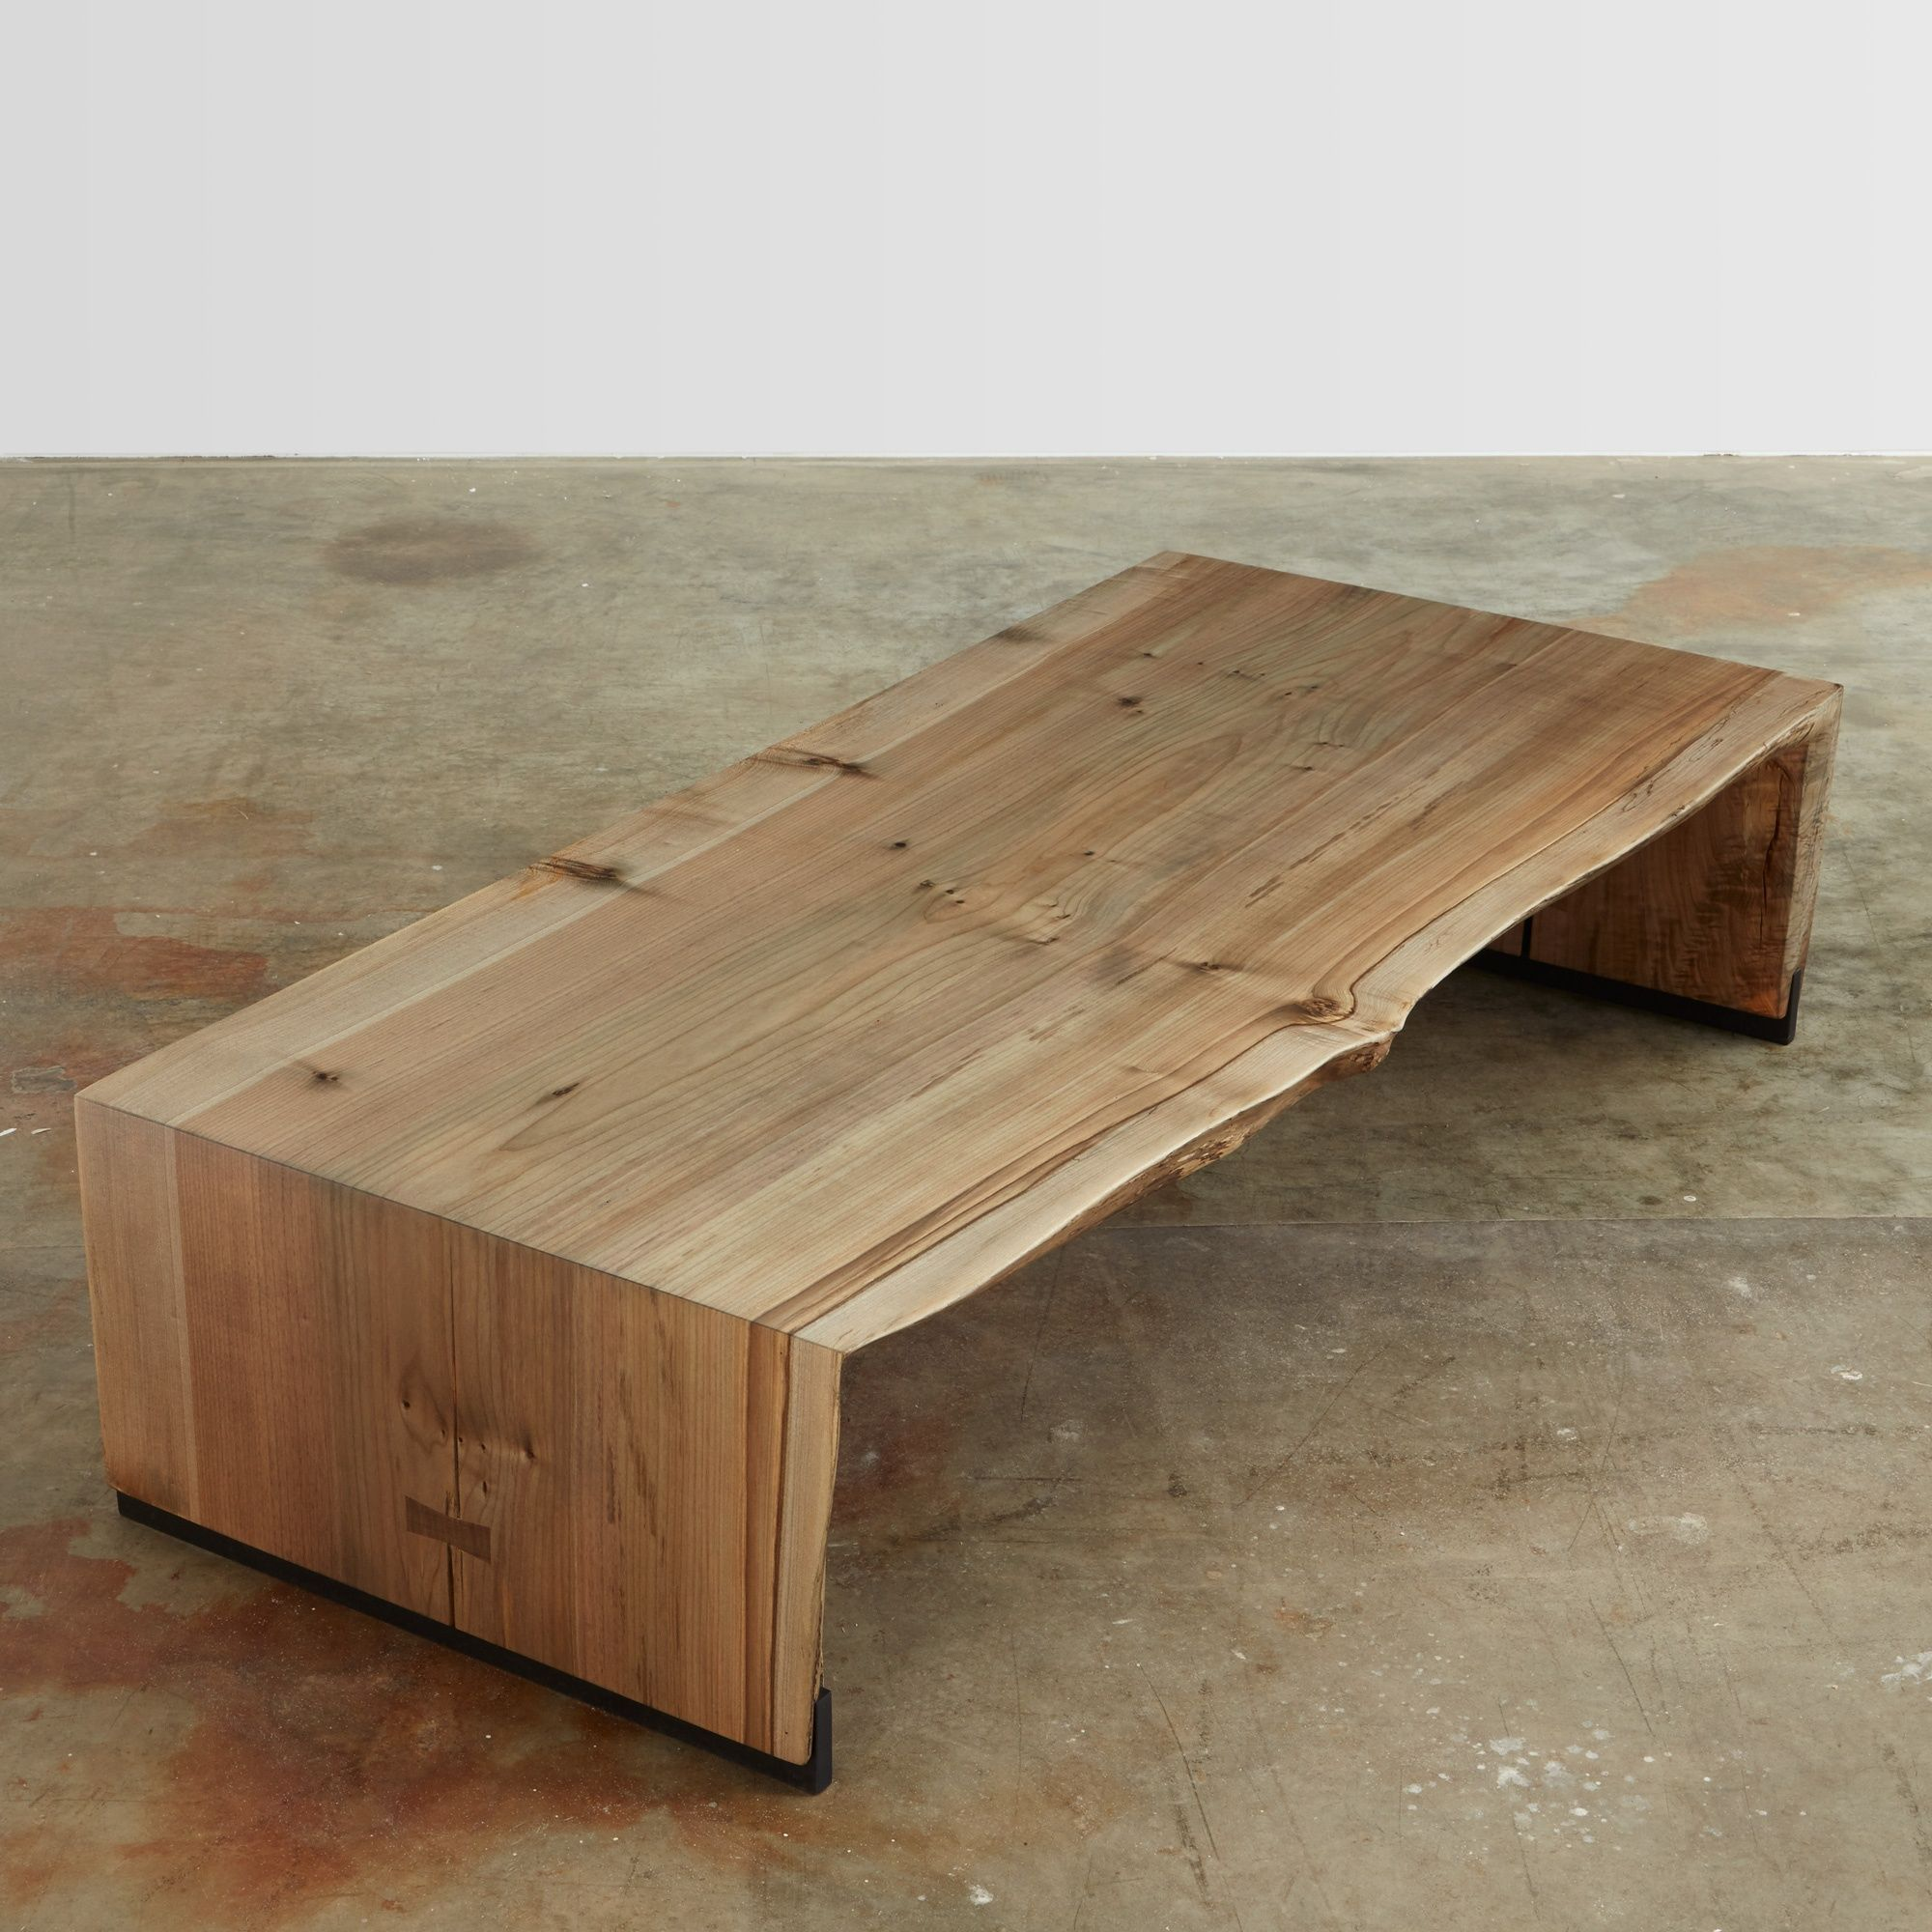 Urban Hardwoods Ebonized Maple Bi Fold Coffee Table #Urbanhardwoods #Salvagedwood